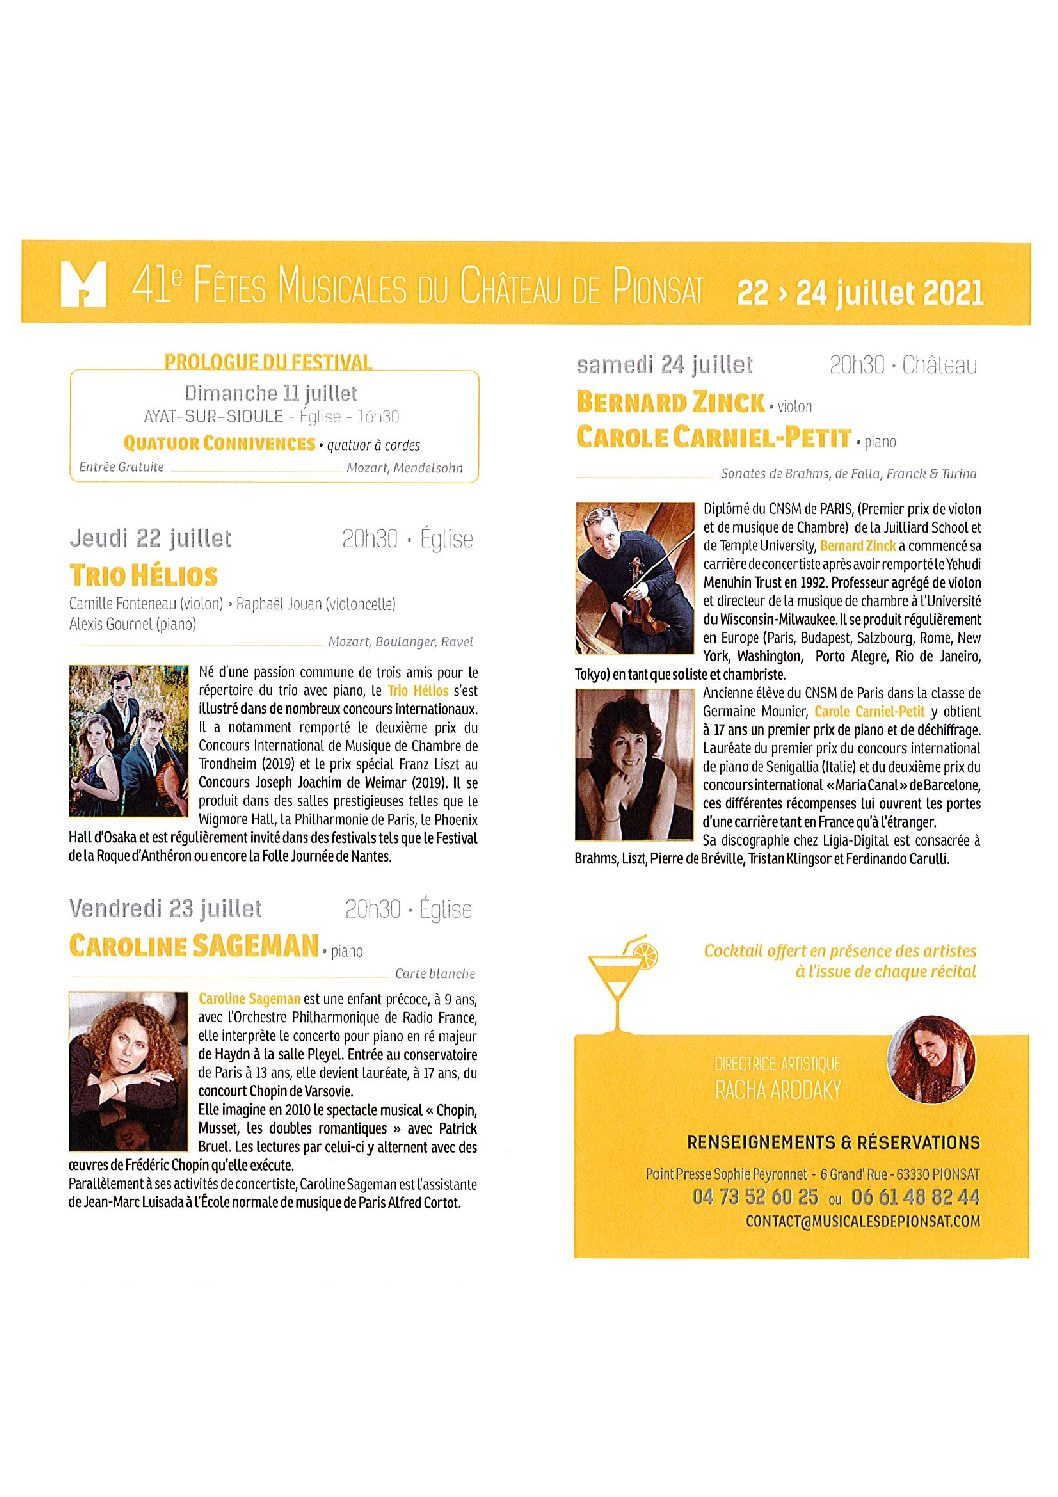 FETES MUSICALES 2021